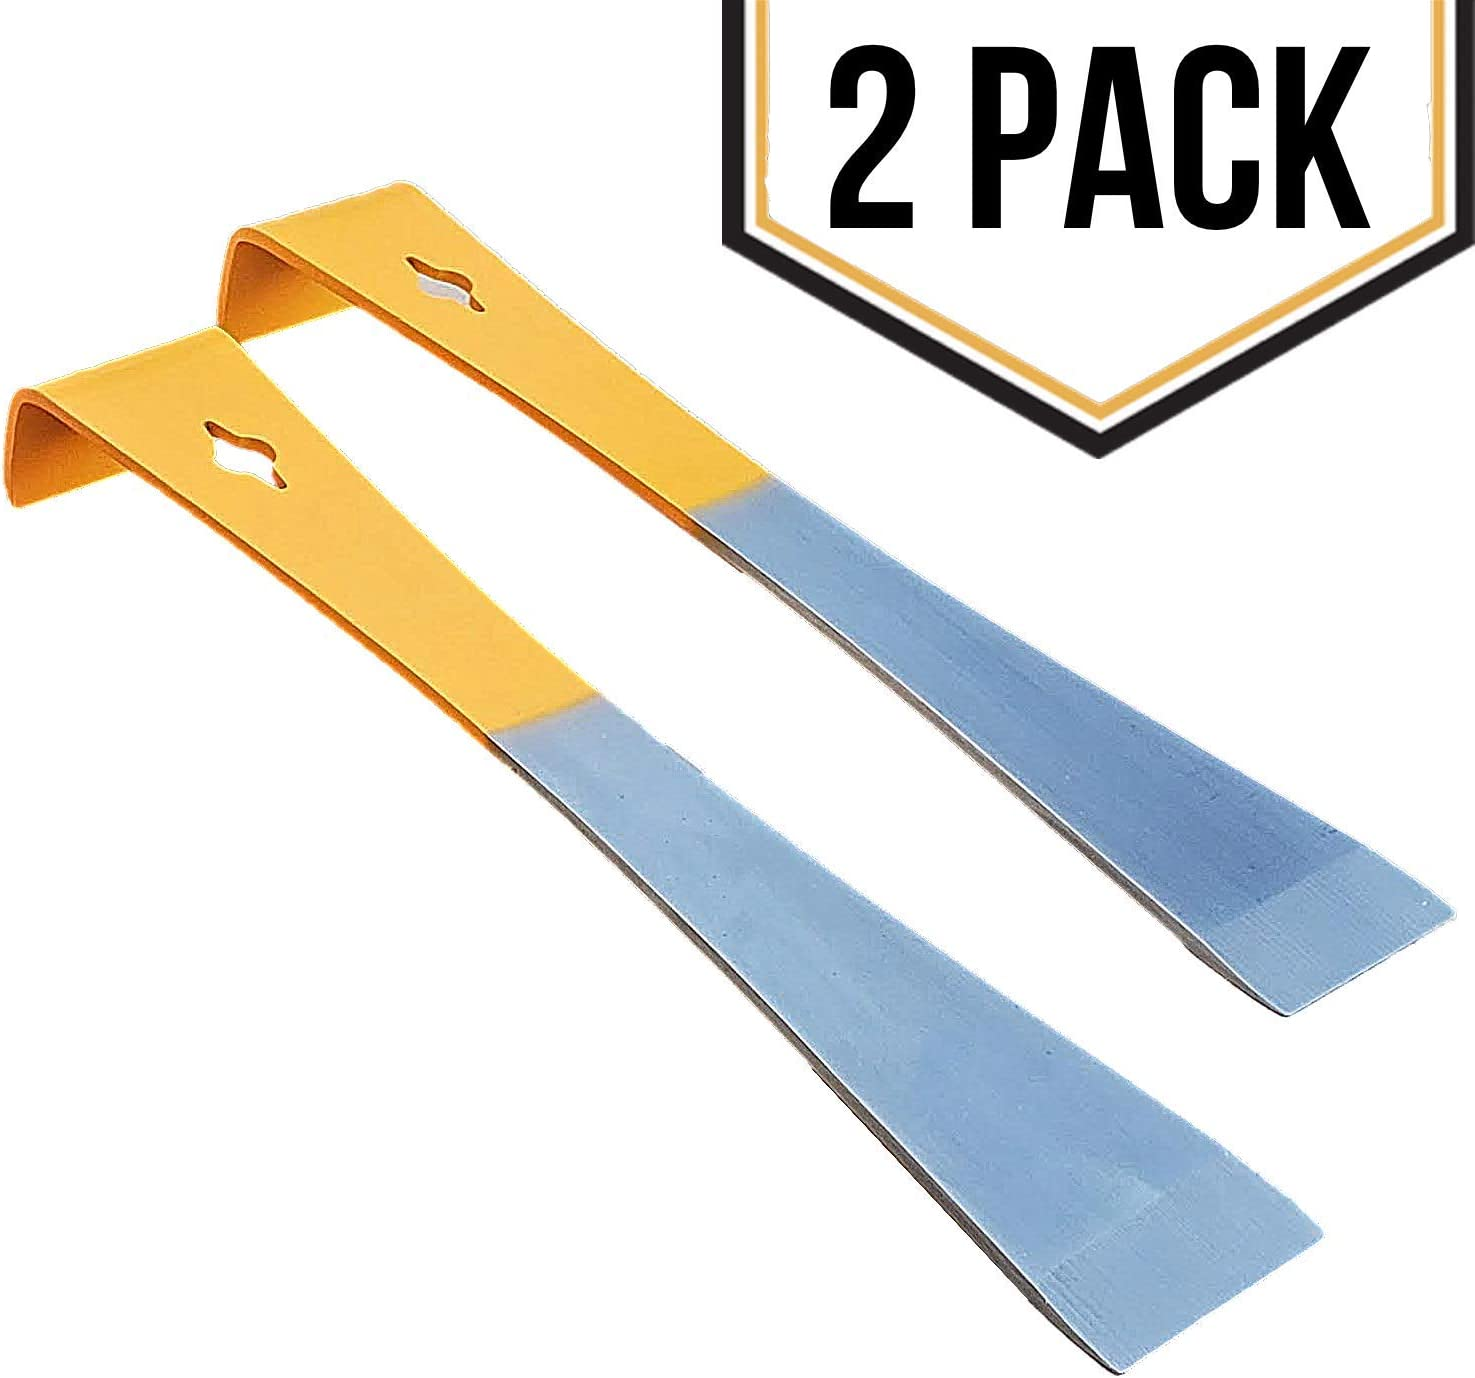 Stainless Steel Beekeepers Hive Tool Set with a Very Strong Flat Bar for Prying Bee Hives Apart, Lifting Frames and Bent Edge for Scraping Your Beehive and Supplies Clean of Wax - 2 Pack